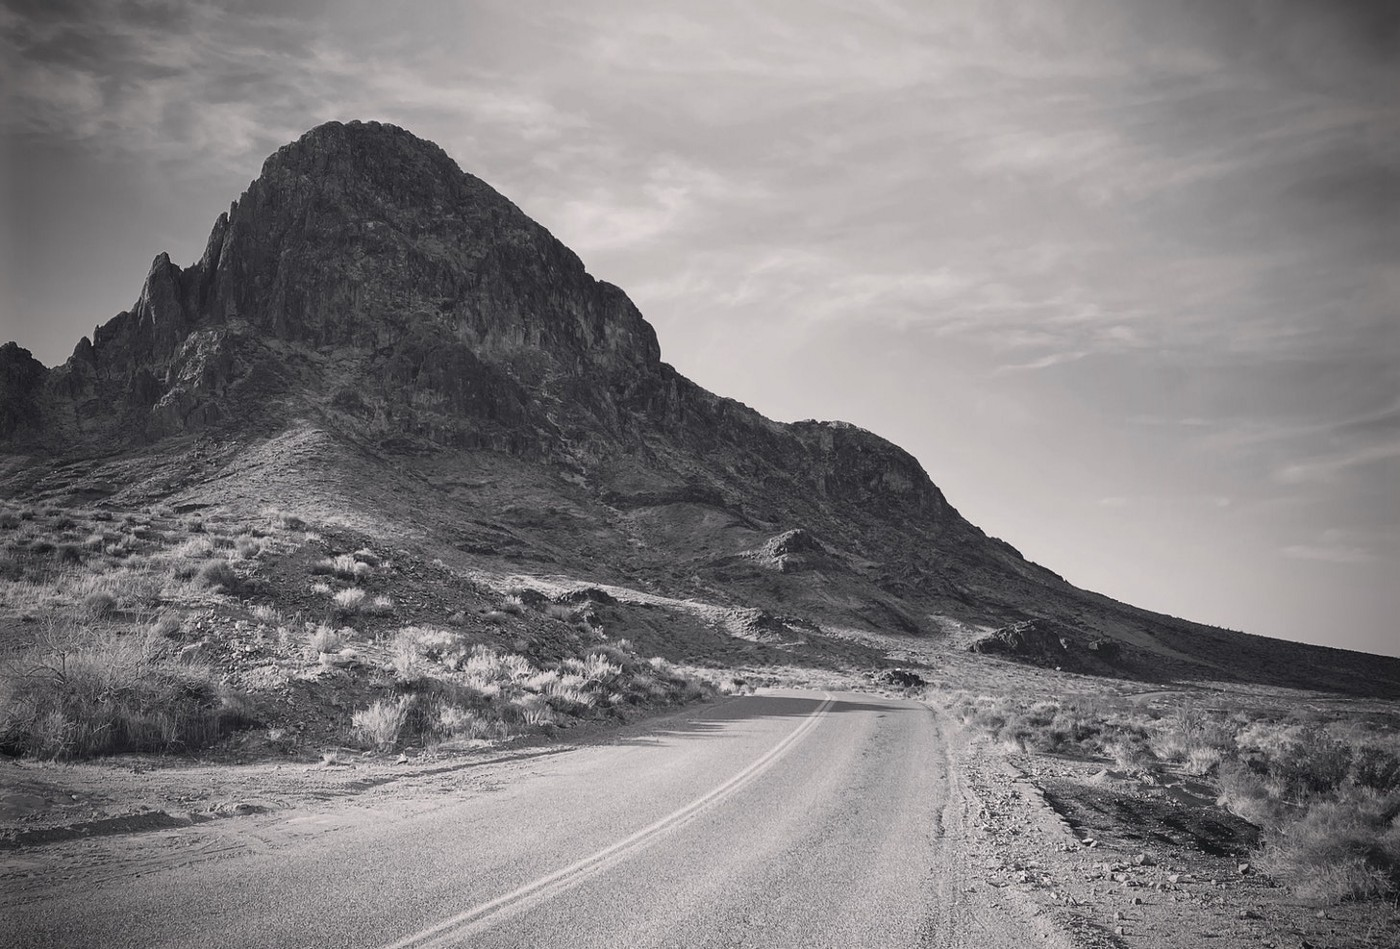 A black and white photo looking down a curvy desert road with a rocky mountain peak in the distance.